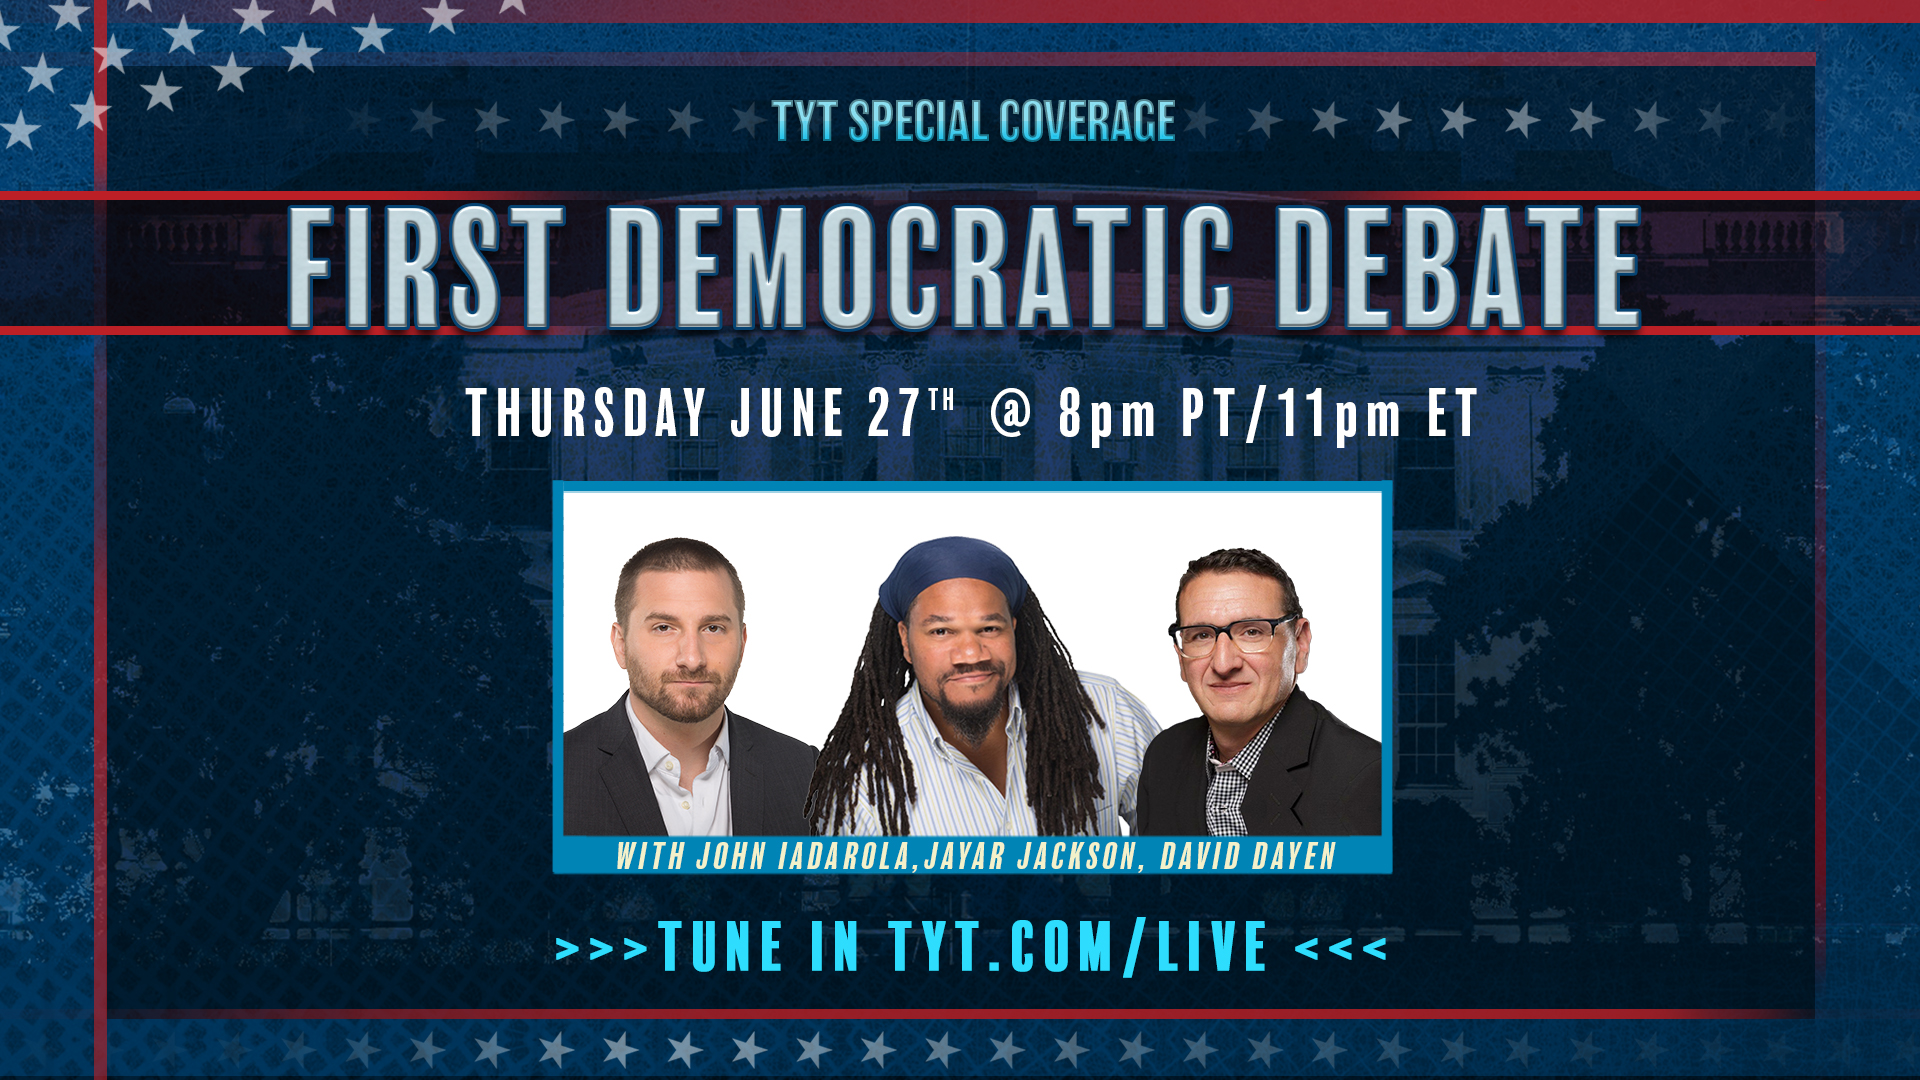 First Democratic Debate Fullscreen 1920x1080 (1)